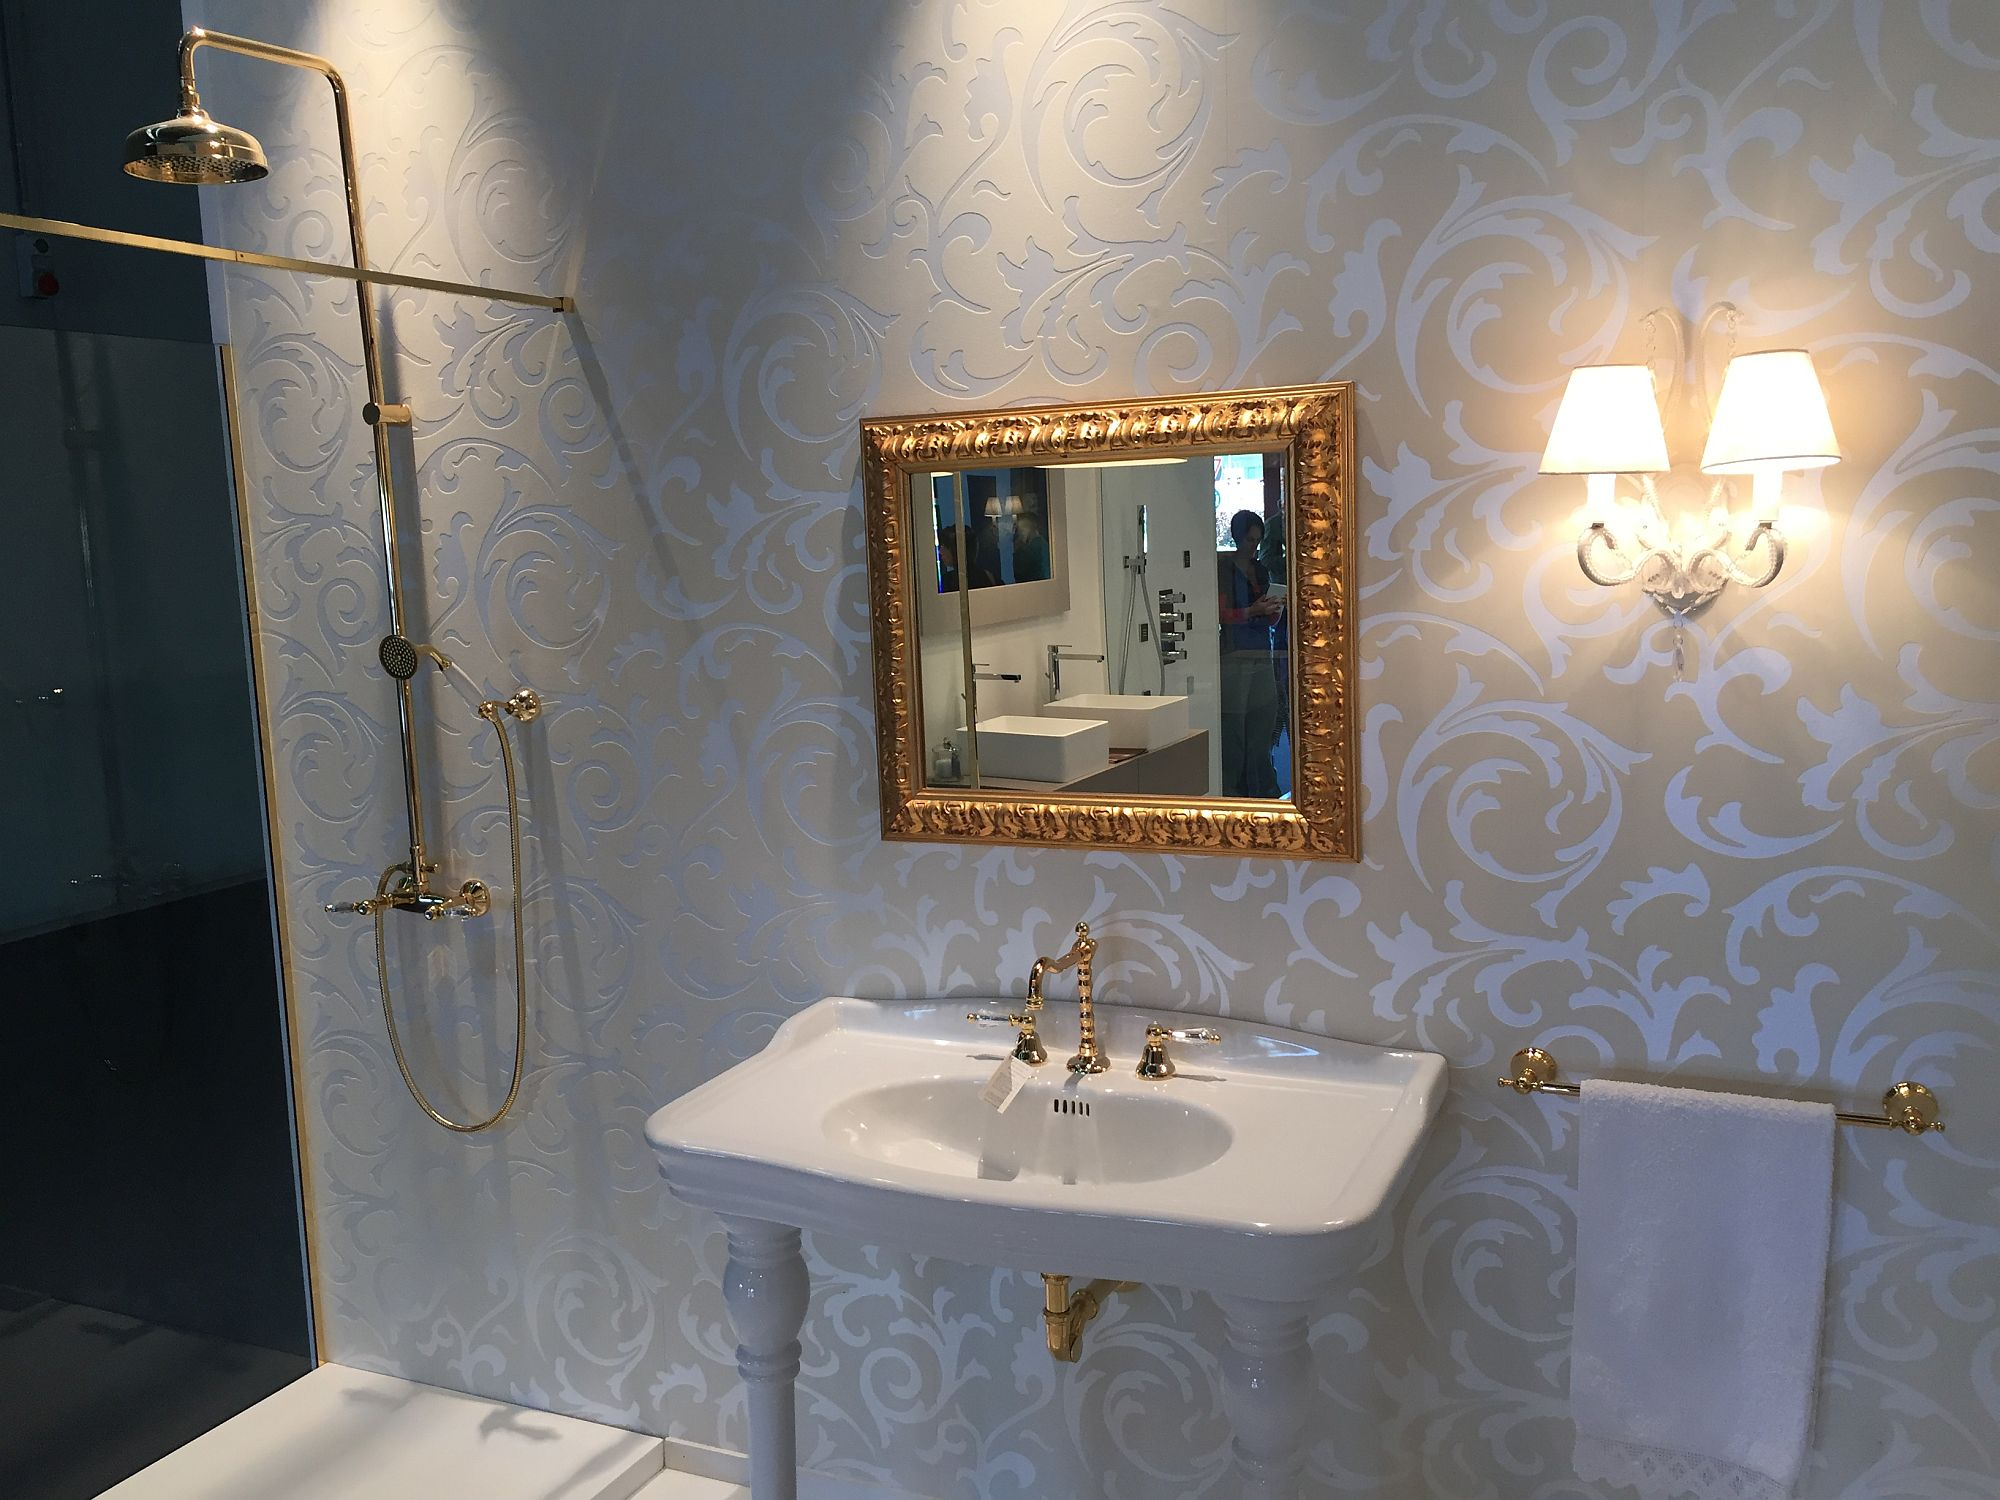 Mirror frame from Fiore Rubinetterie brings art decot style to the bathroom